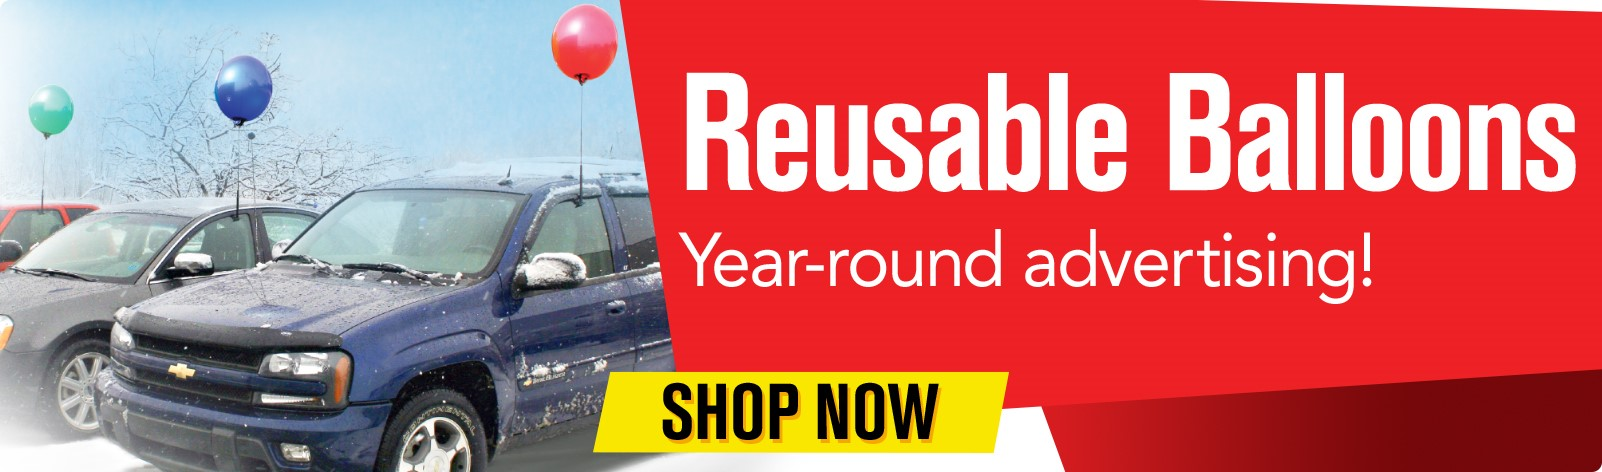 Reusable Balloons - Year-round advertising for your car dealership!